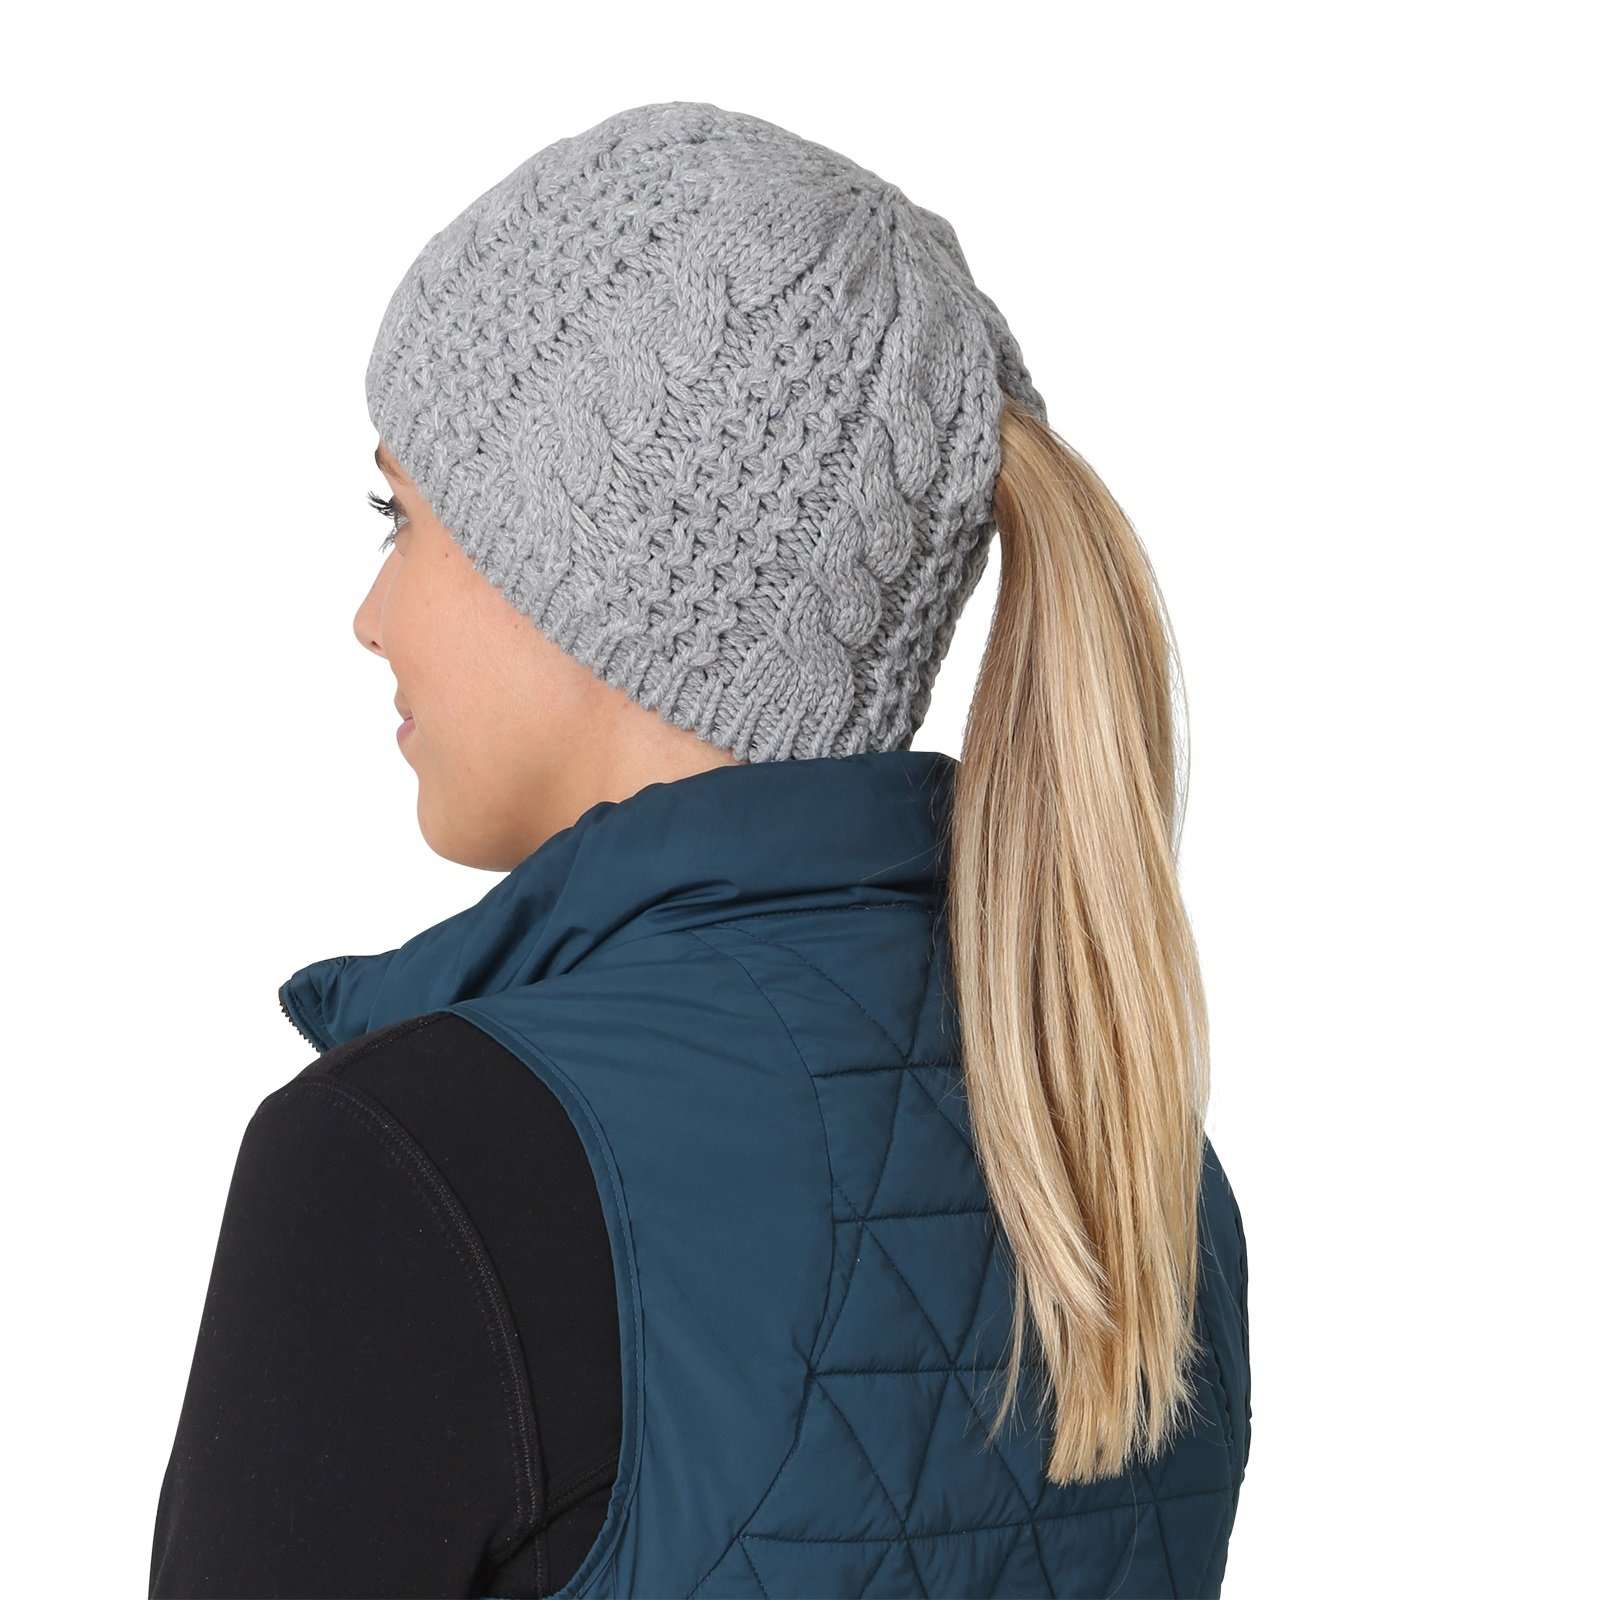 TrailHeads Women's Cable Knit Ponytail Beanie - storm grey by TrailHeads (Image #6)